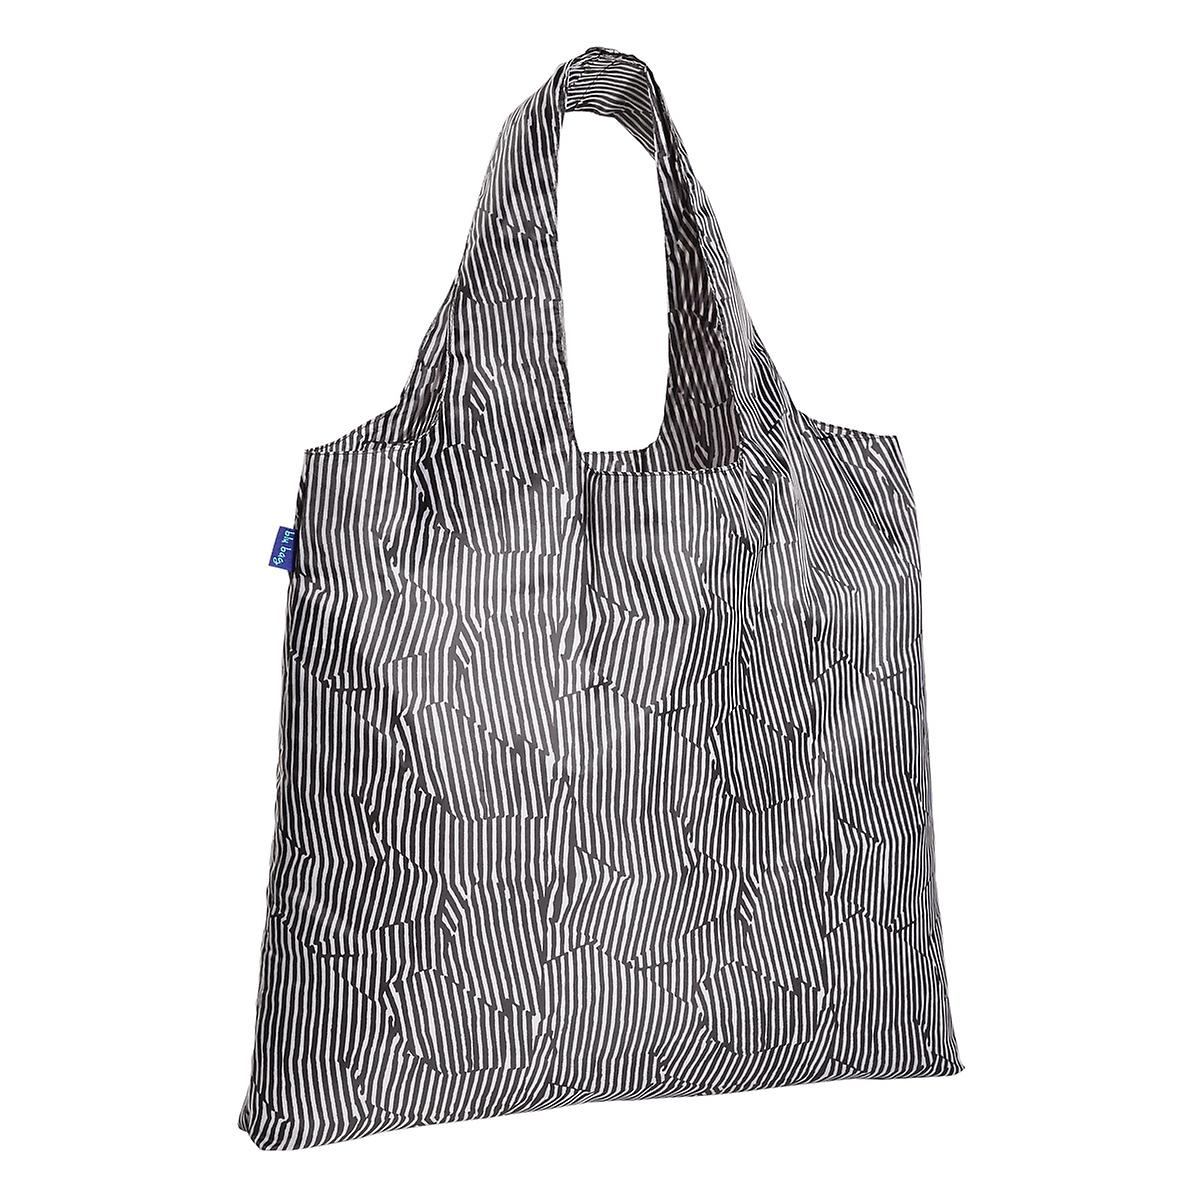 Zebra Blu Bag Reusable Tote